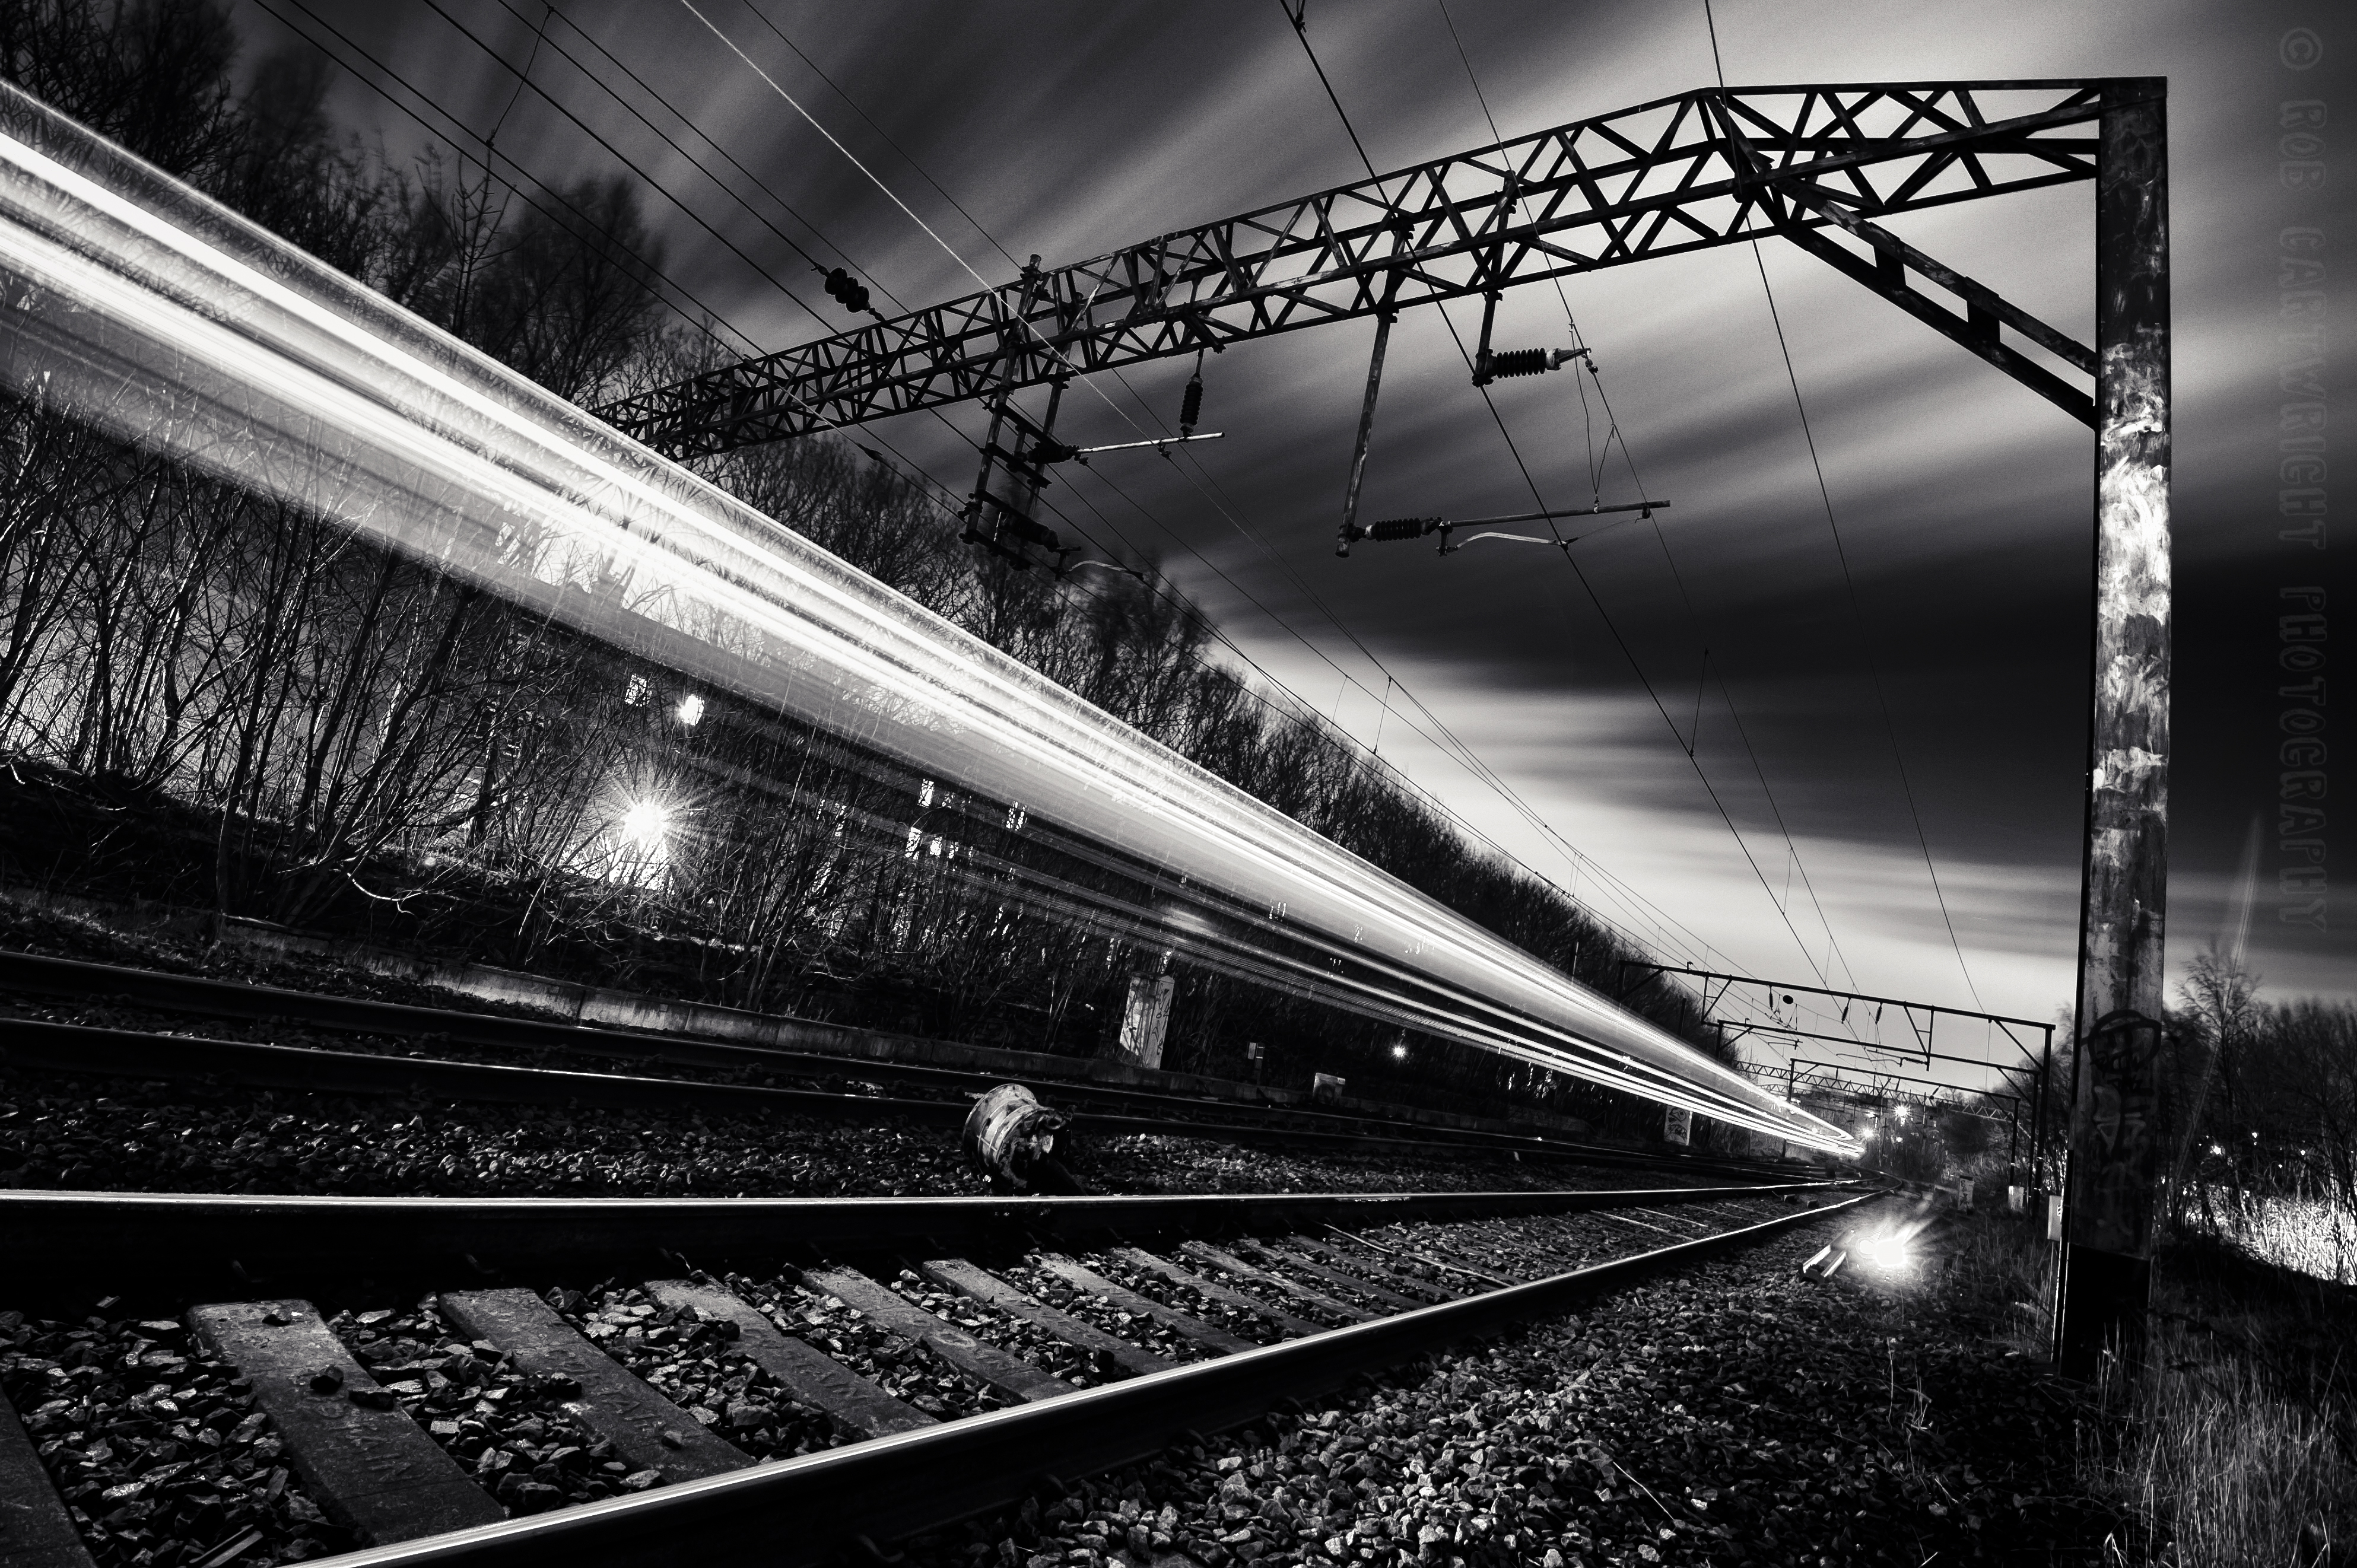 rail-line-in-glasgow-at-night-with-light-trails-wide-angle-black-and-white[1]